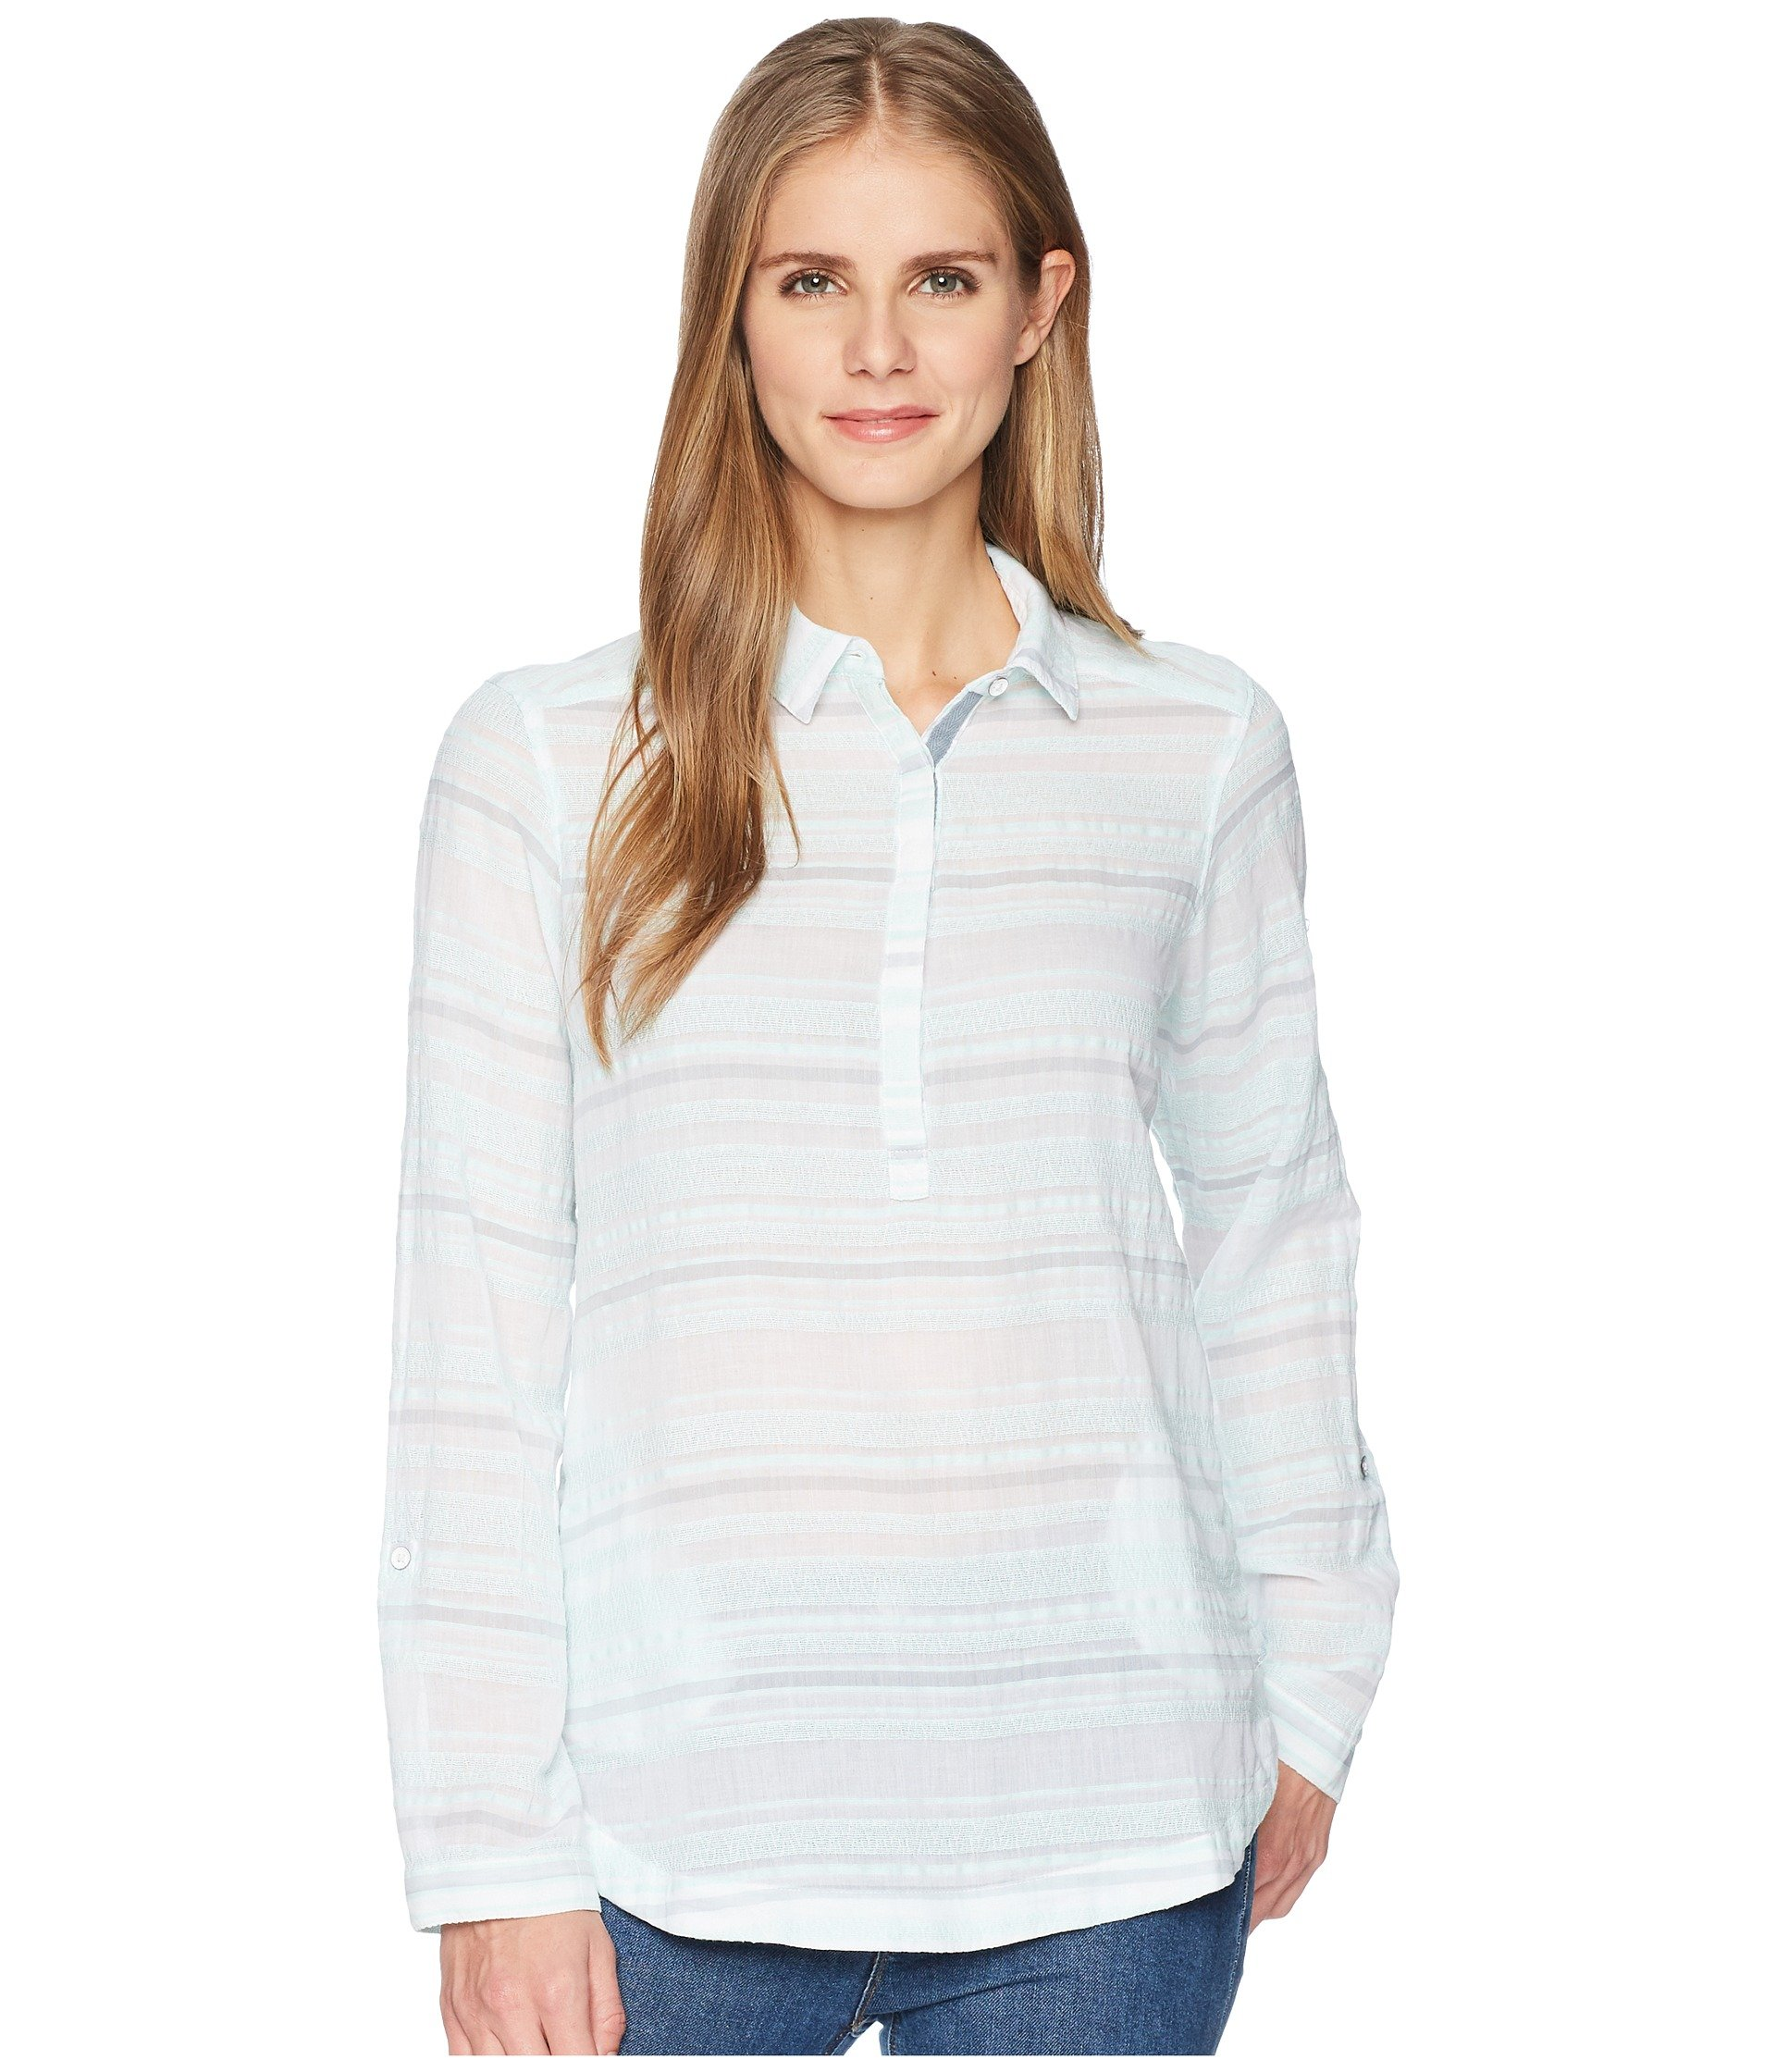 Blusa para Mujer Columbia Early Tides Tunic Update  + Columbia en VeoyCompro.net